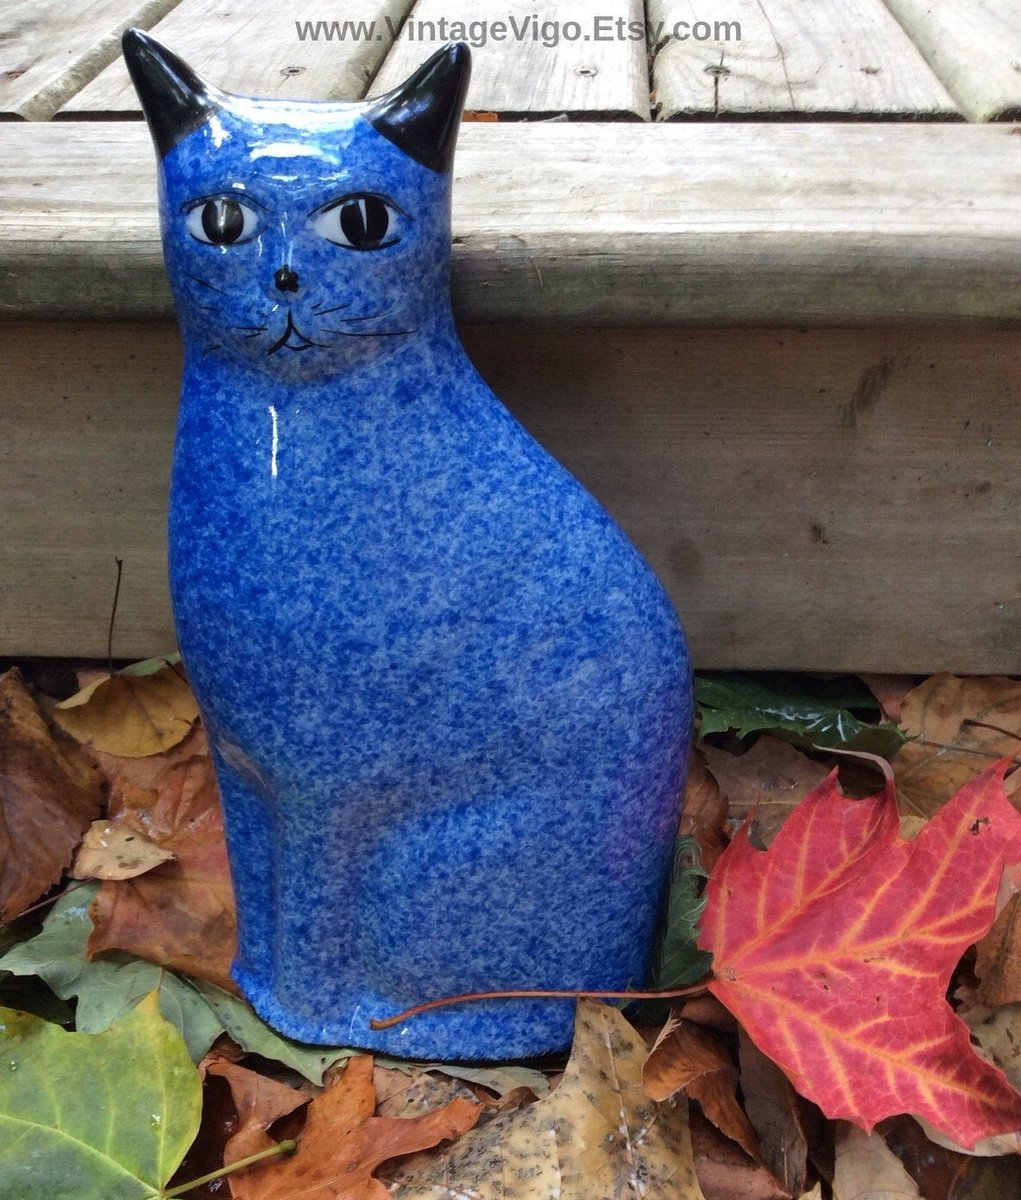 Excited to share the latest addition to my #etsy shop: #Cats #Vintage #Blue #Speckled #Cat #Calico #SpongePainted #Halloween #ArtDeco #thrifter #vintagevigo #youtuber #thriftpicks https://t.co/YZnXyDg26n https://t.co/OYVlVABVEI